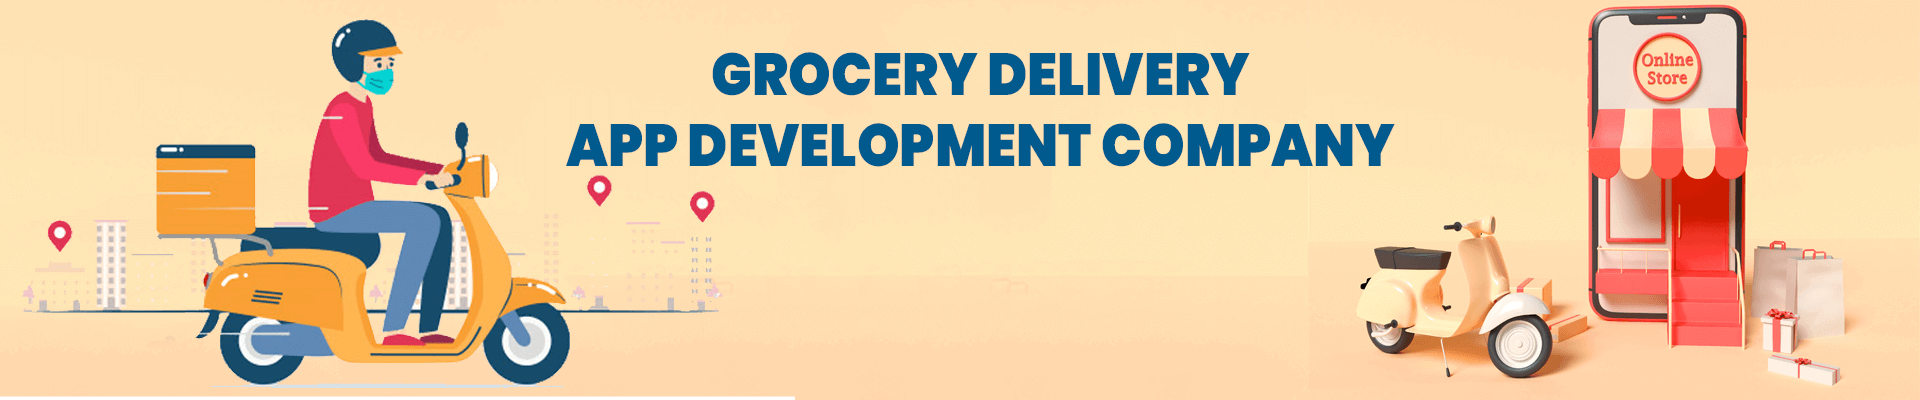 Grocery Delivery App Development Company   Grocery Delivery App Developers For Hire